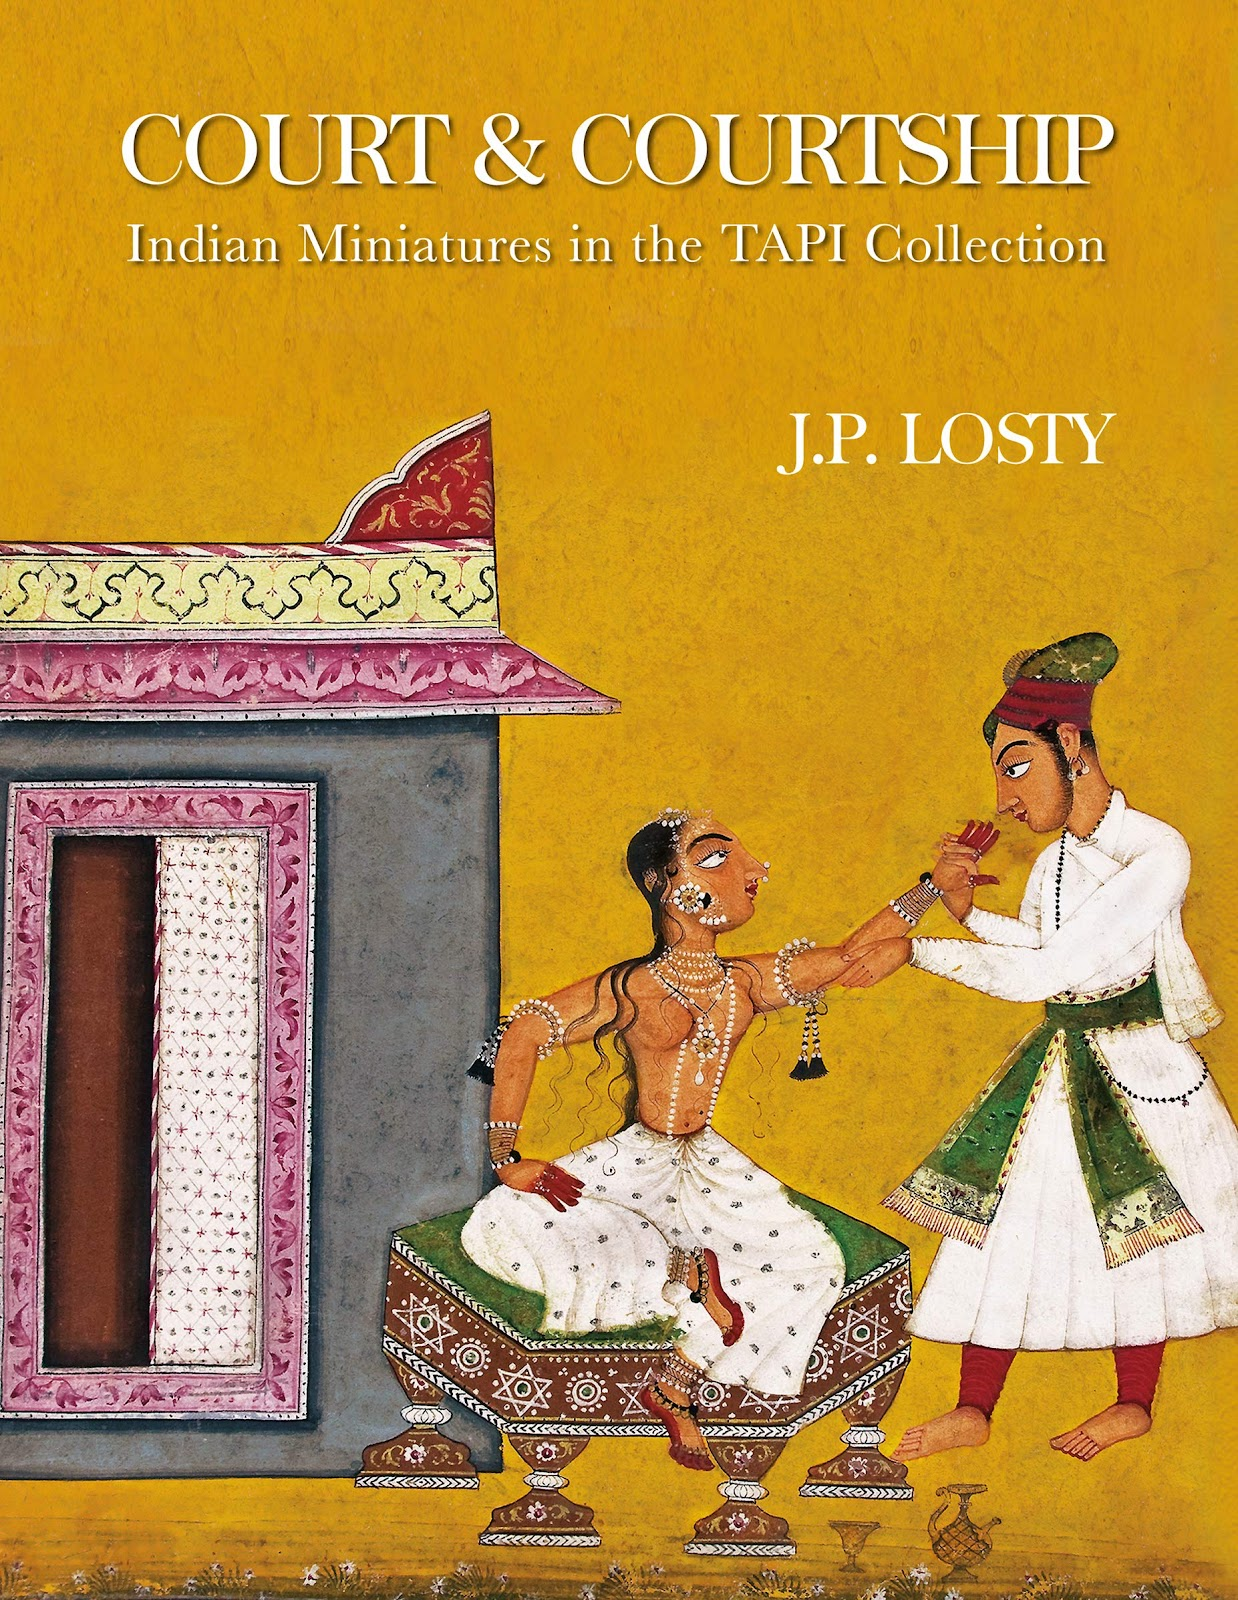 Court & Courtship: Indian Miniatures in the TAPI Collection: Losty, J. P.:  9789389136630: Amazon.com: Books